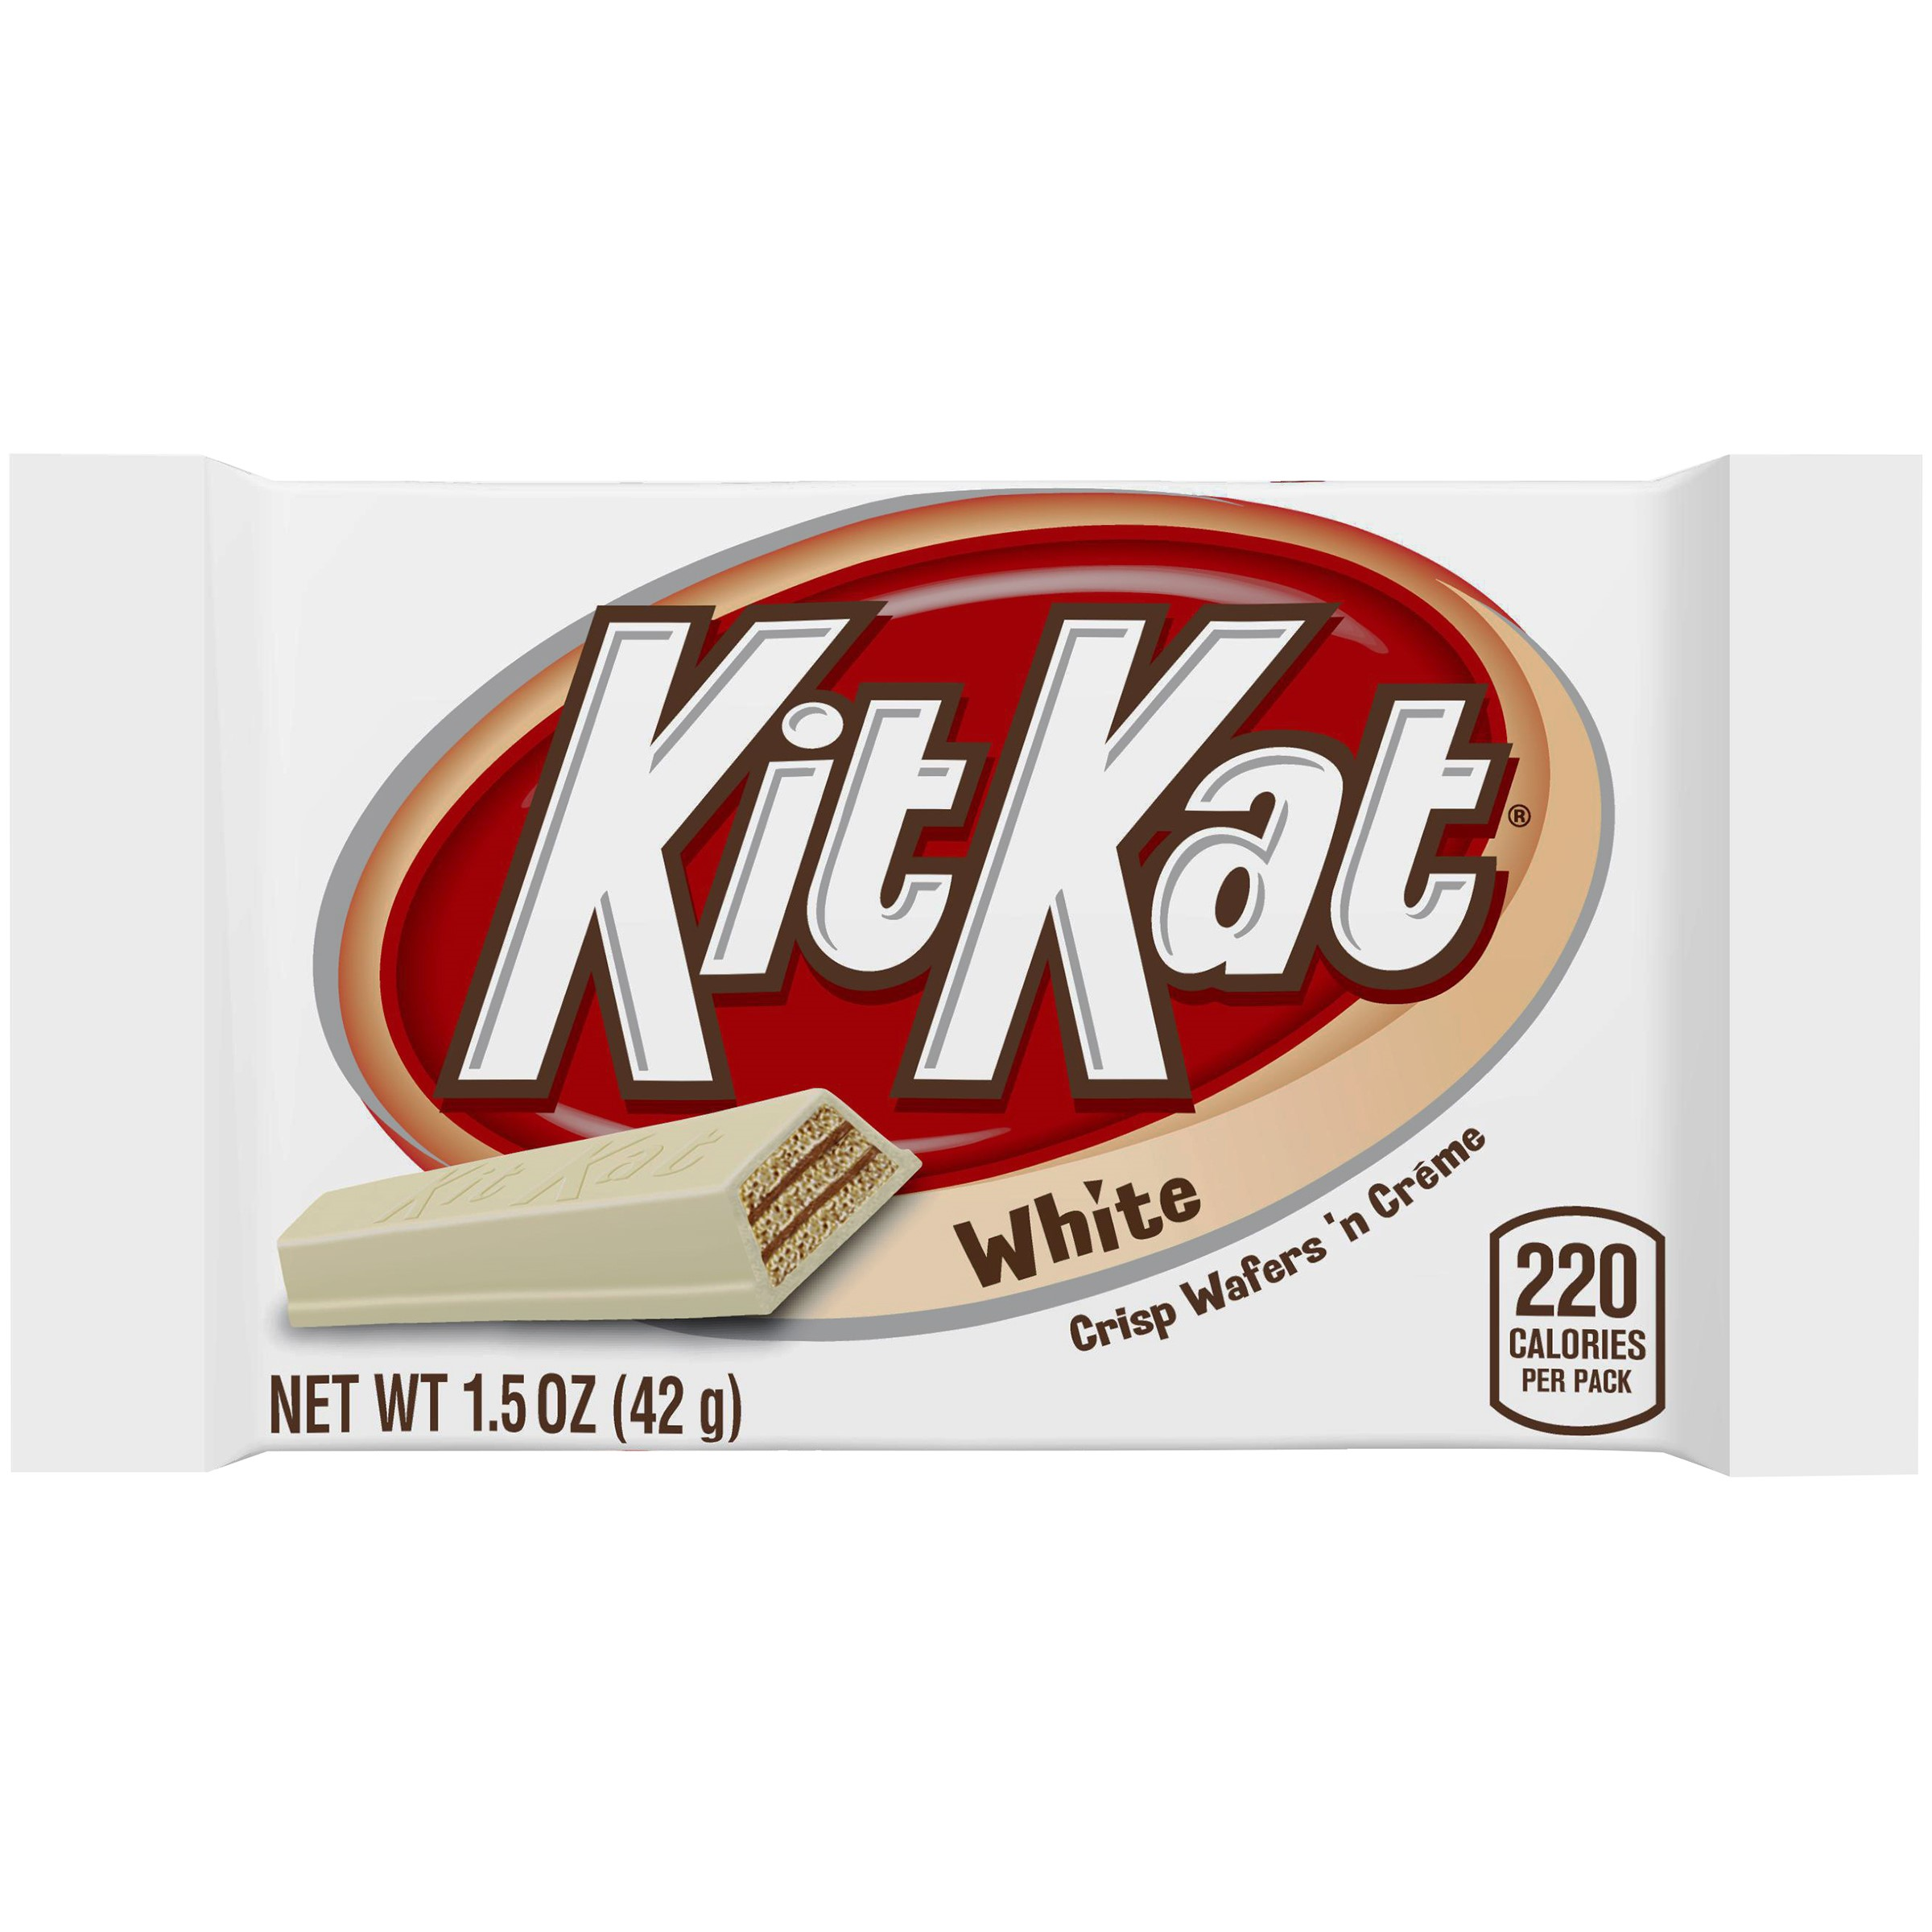 Kit Kat Crisp Wafers In Milk Chocolate Candy Bar, 1.5 Oz.